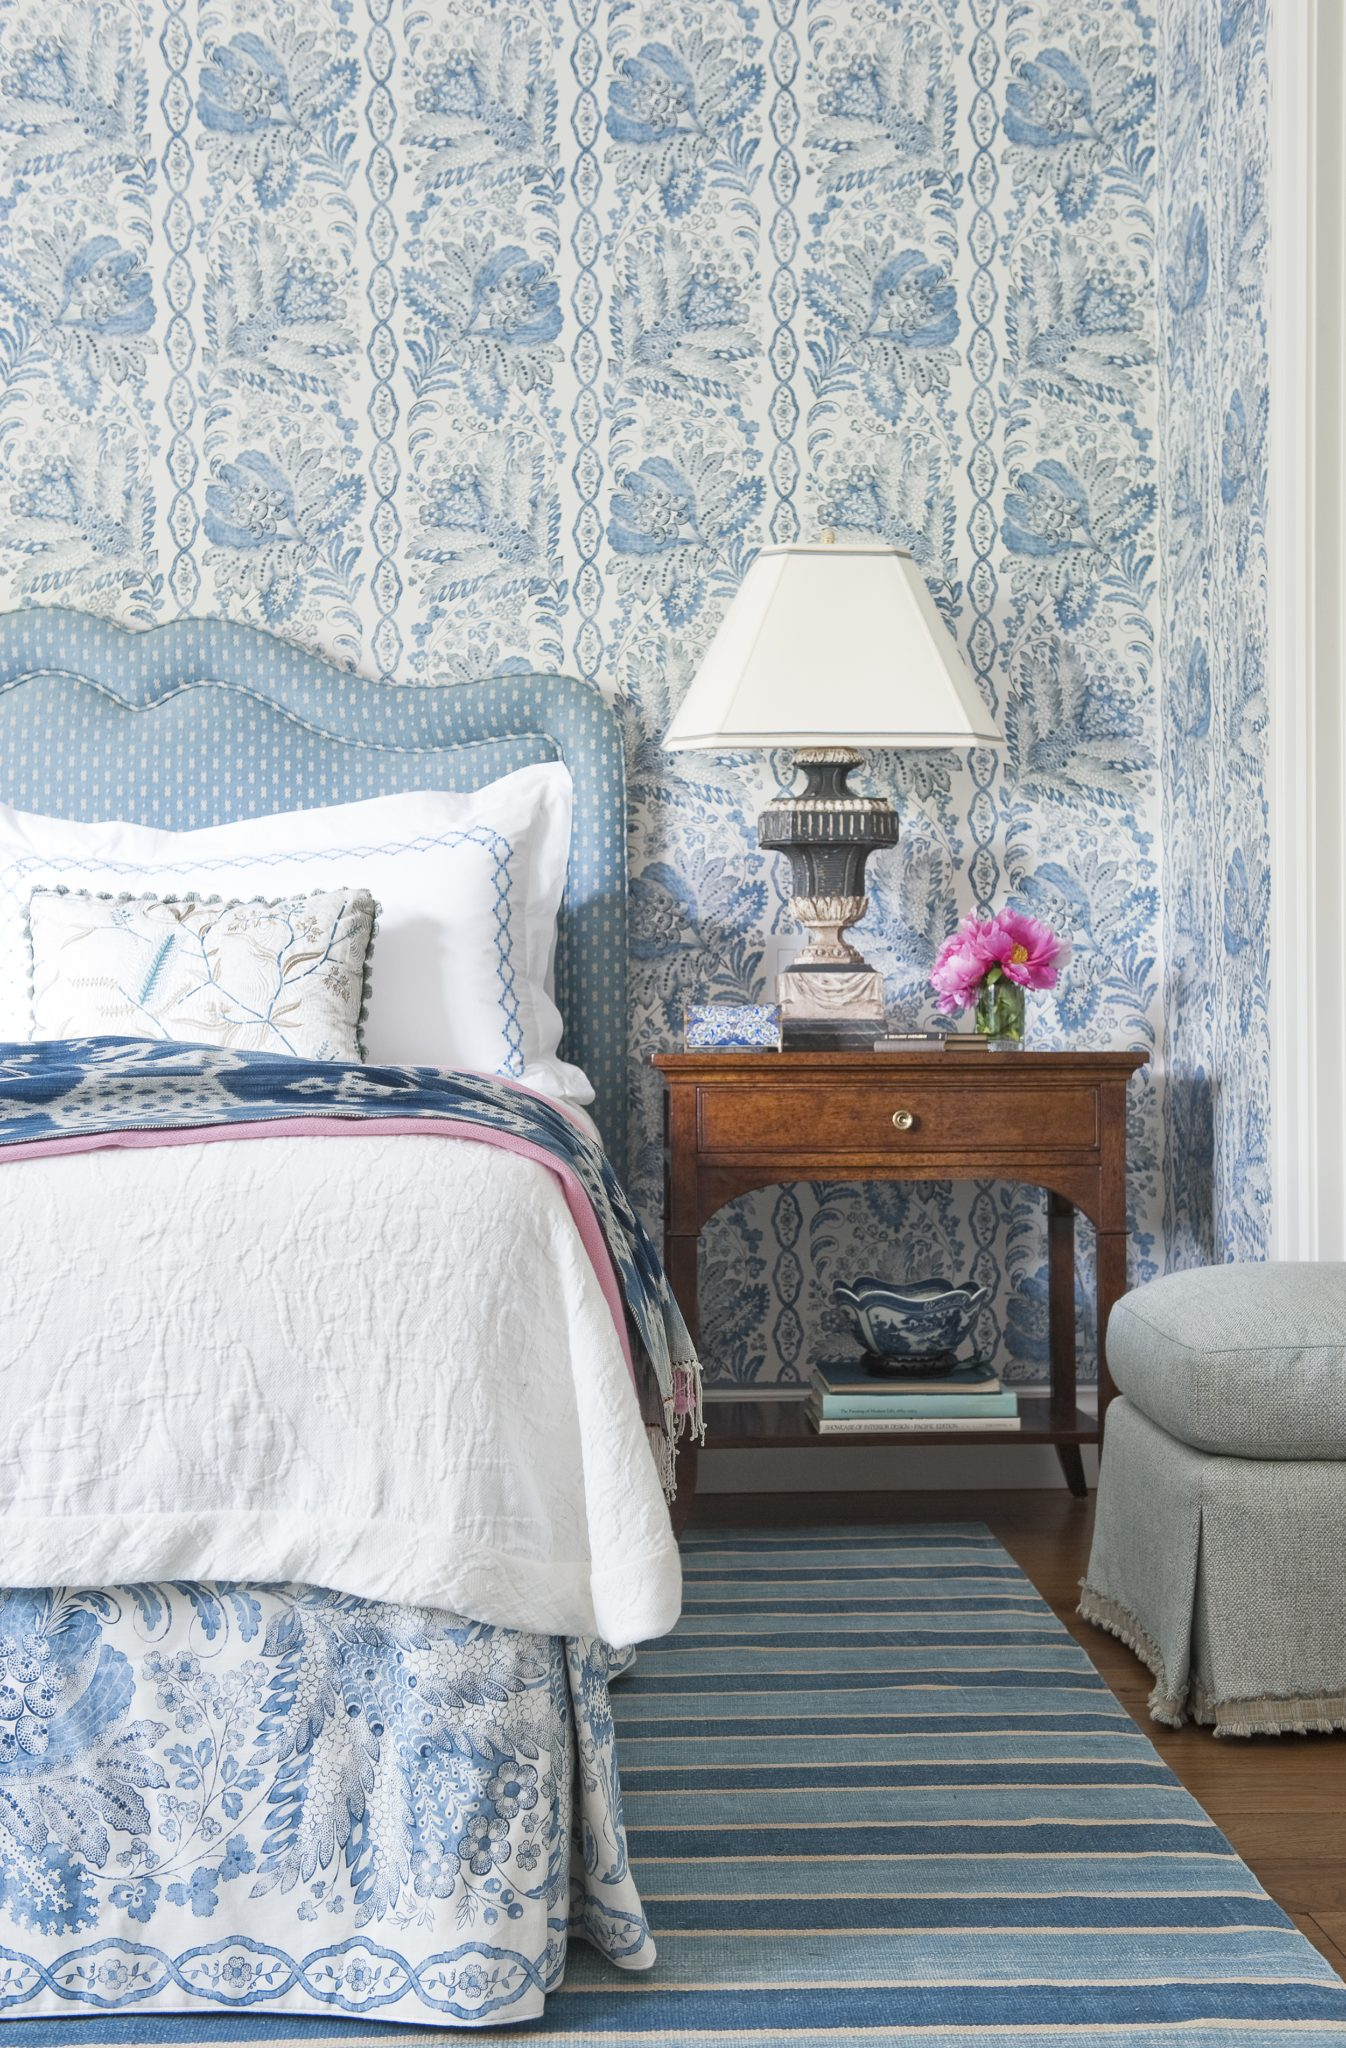 In the guest bedroom, the headboard was custom-designed byTucker & Marks and upholstered in fabric from Clarence House. The wallcovering is a printed linen from Suzanne Tucker Home, and the coverlet is also from Suzanne Tucker Home. The bedside tables are from Charles Fradin.